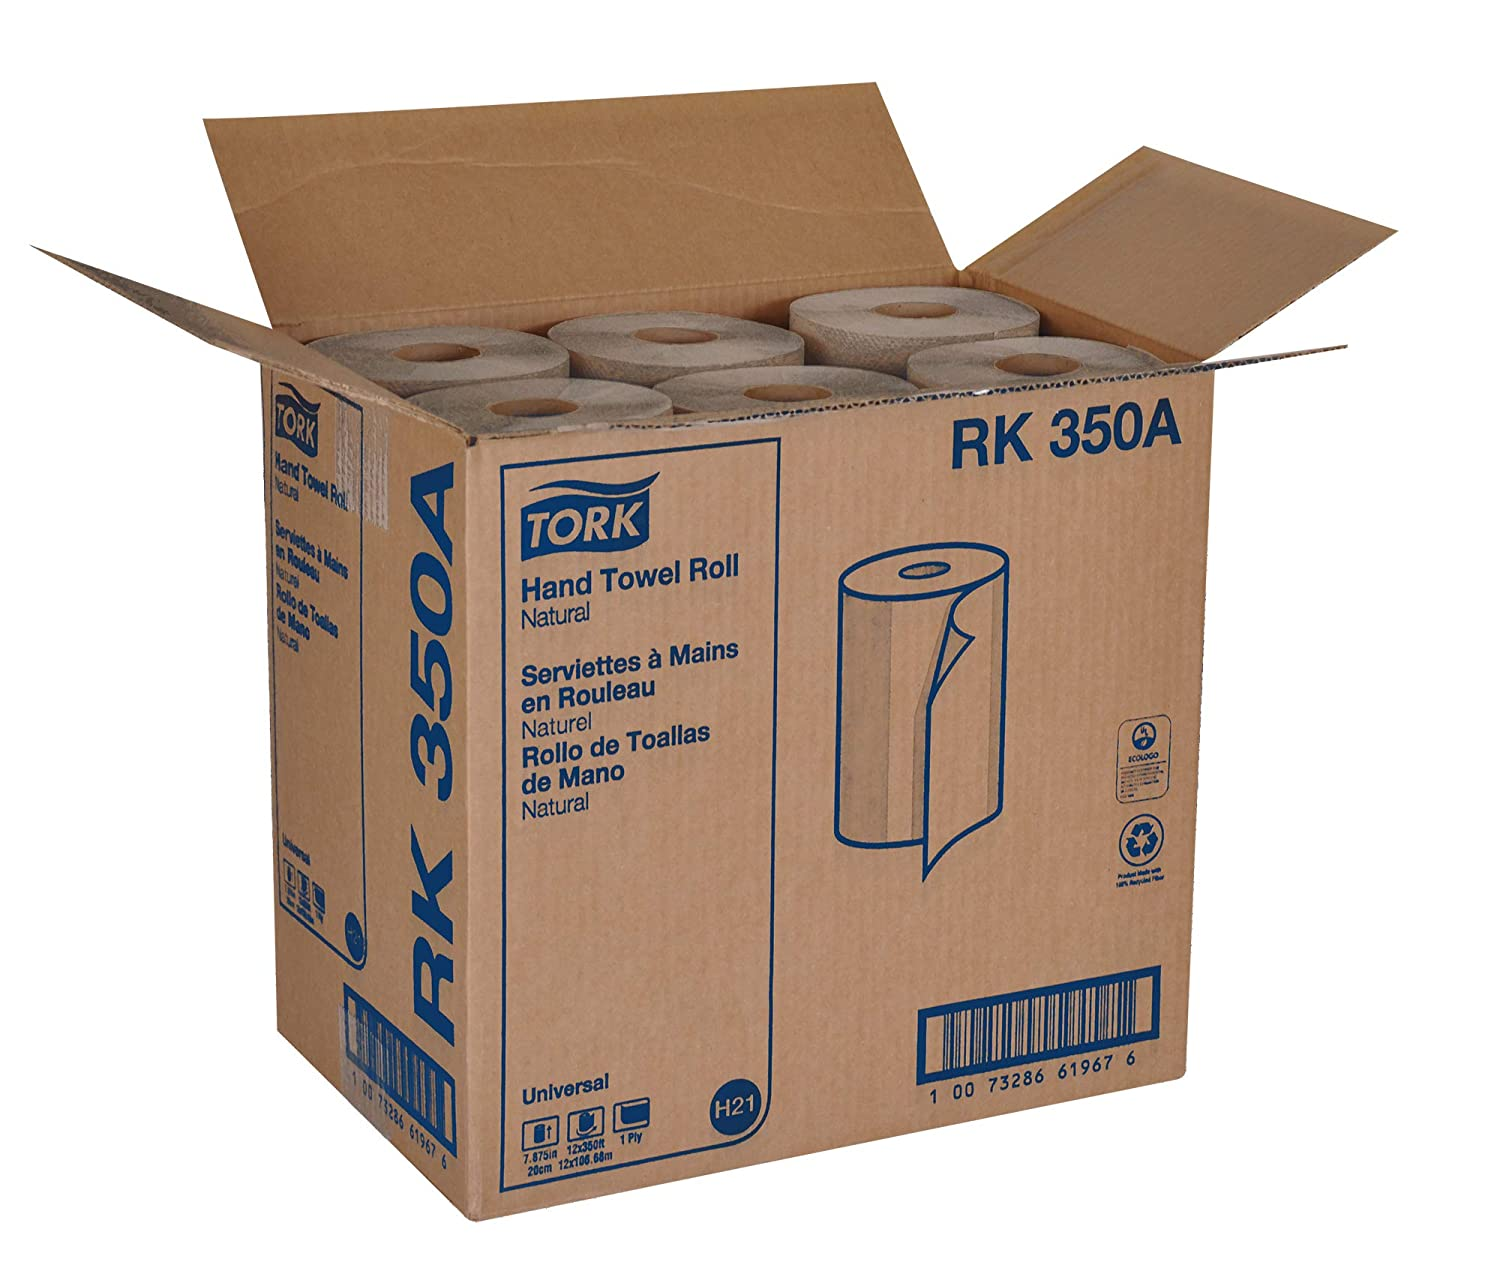 Tork Universal RK350A Hardwound Paper Roll Towel 7.87 in Width x 350 ft Length 1-Ply Natural Green Seal Certified